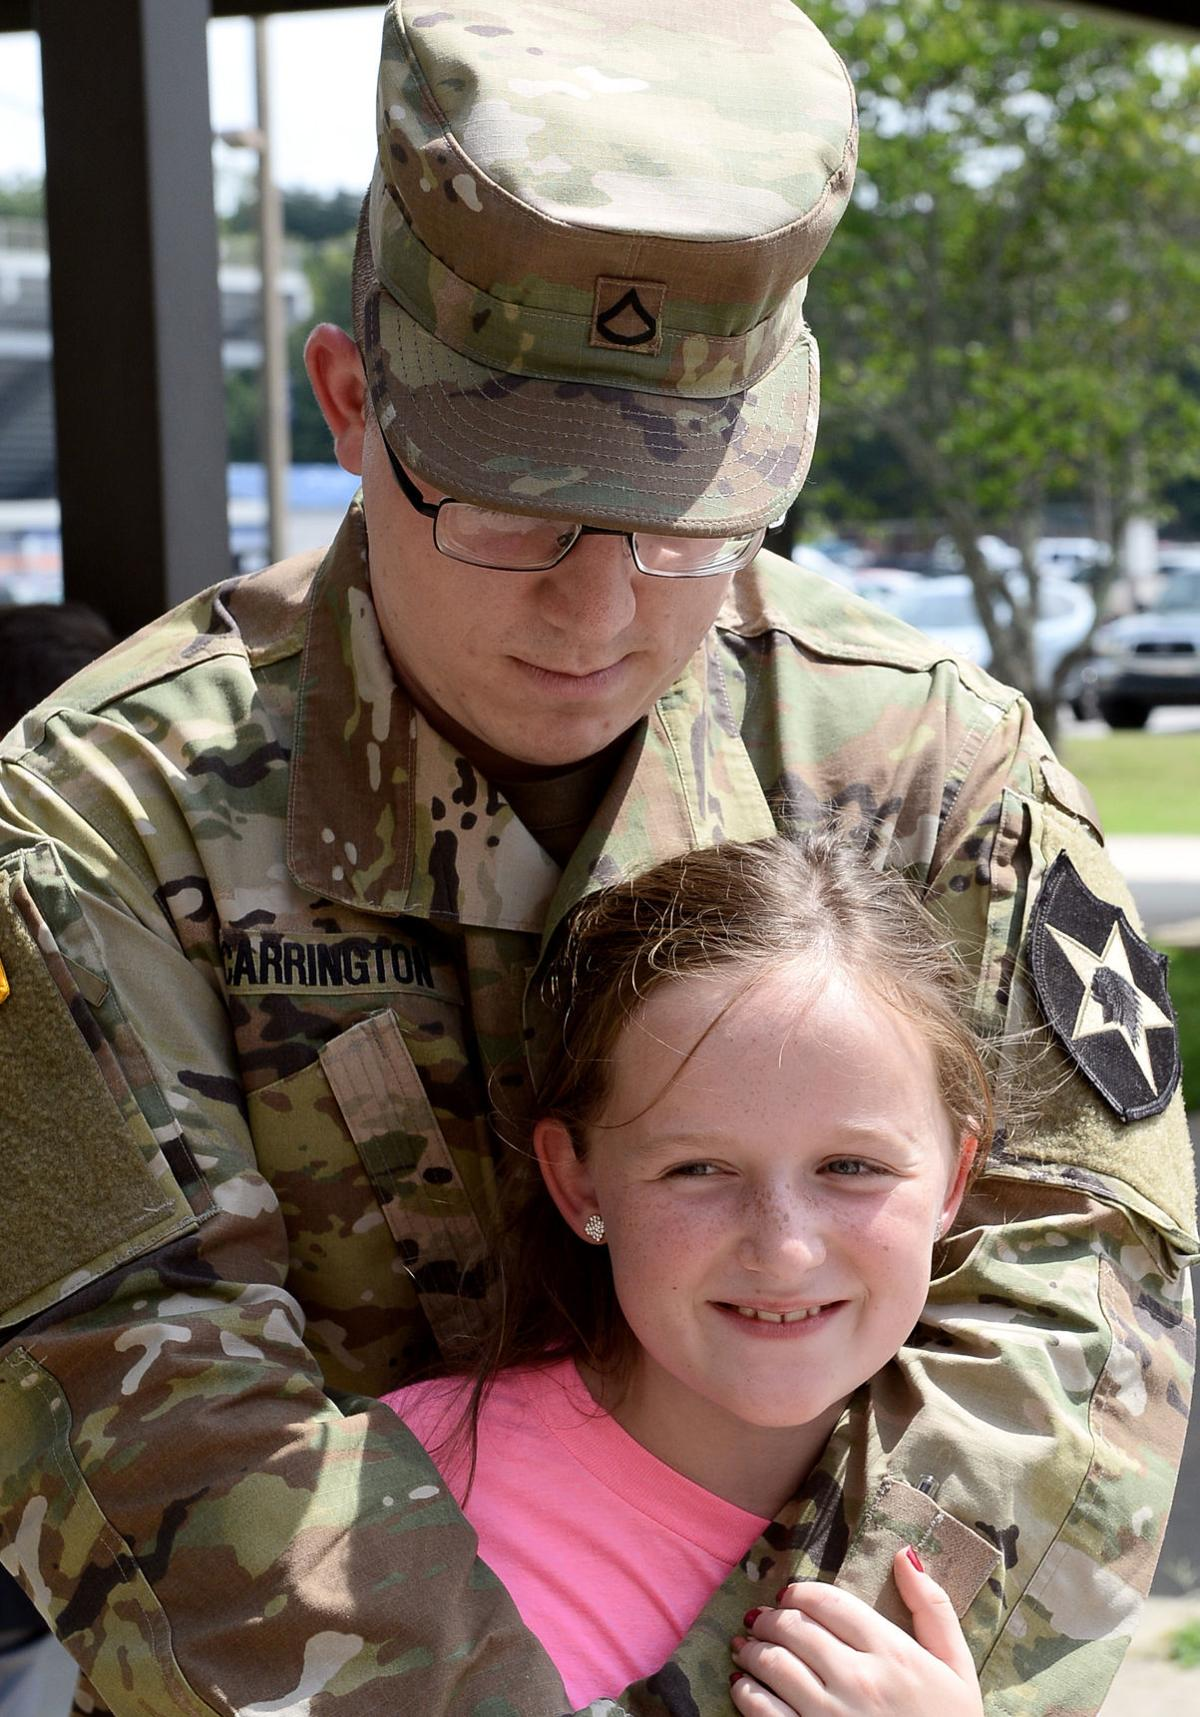 Pfc. Dakota Carrington with his sister, Tori